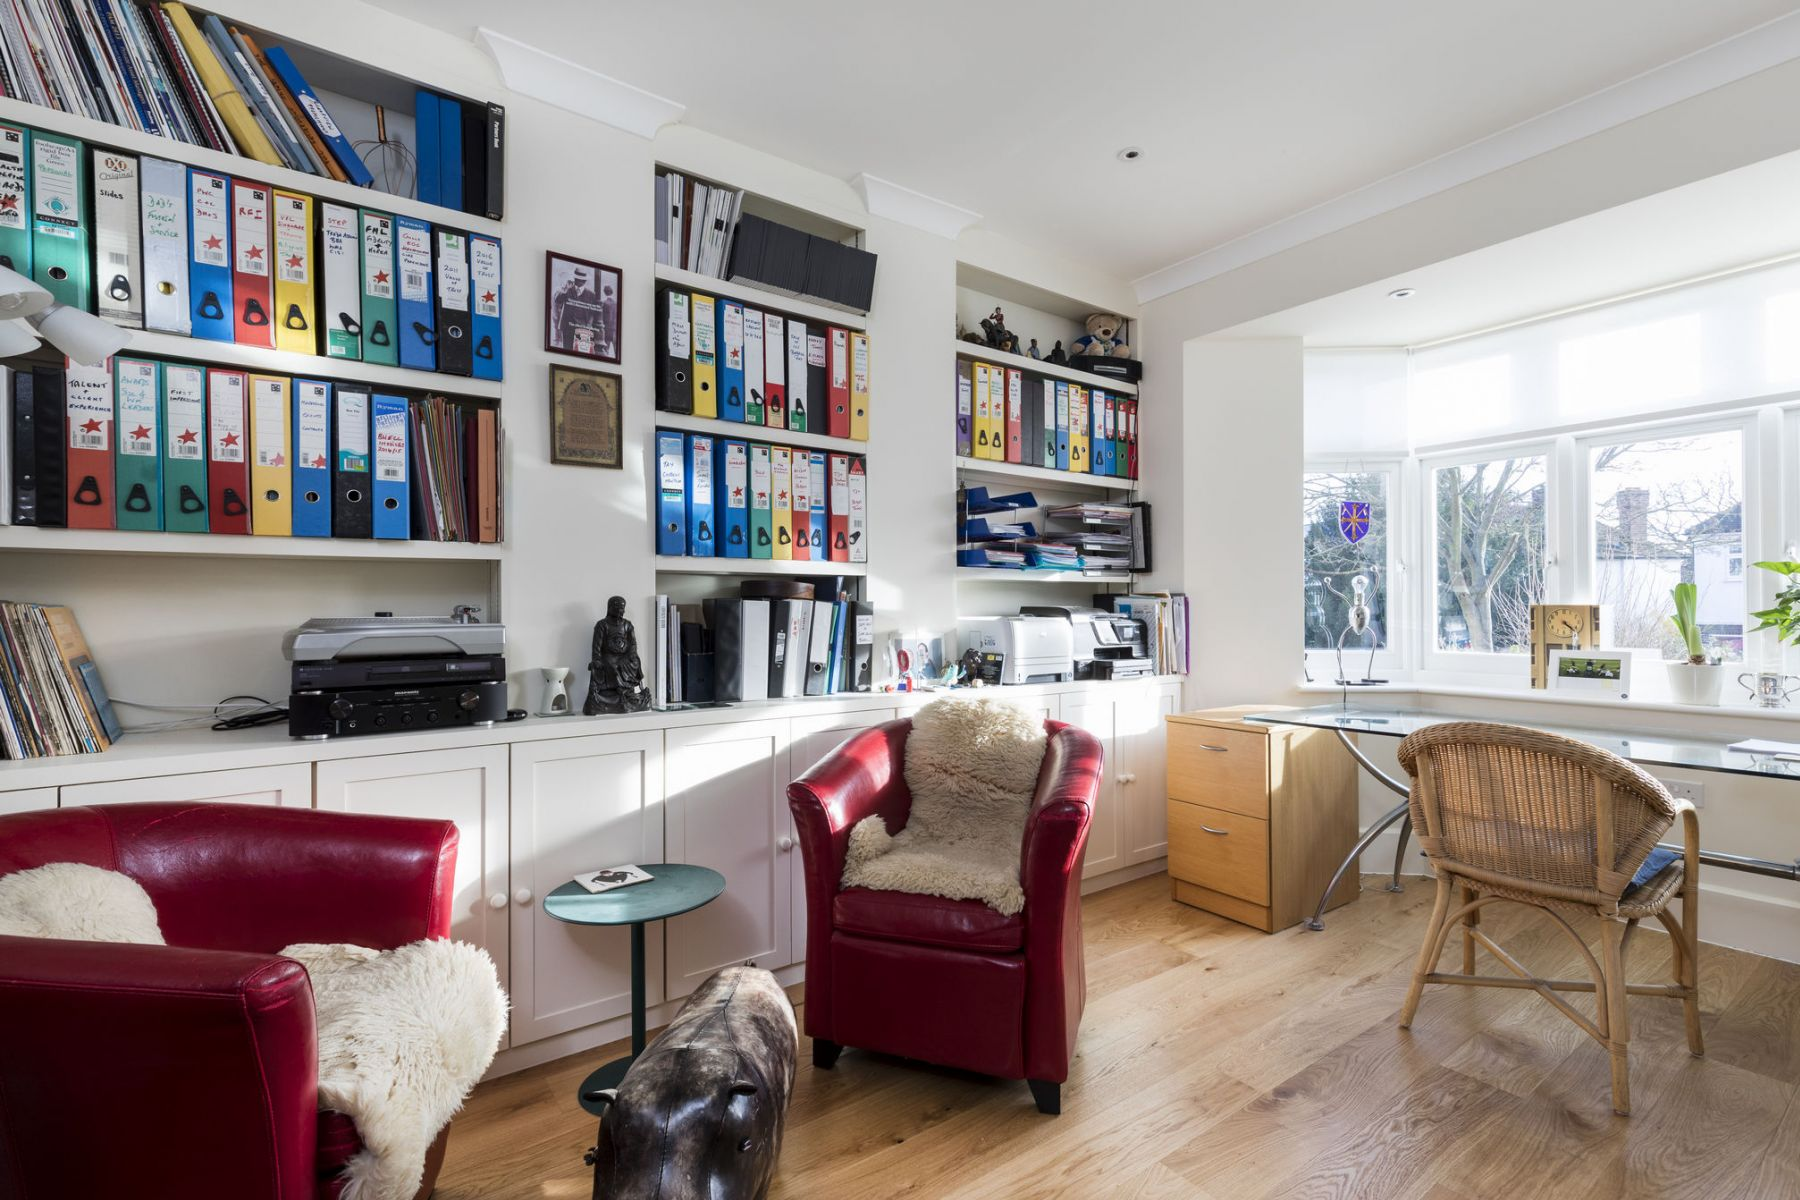 House extension and loft conversion in East Dulwich, London